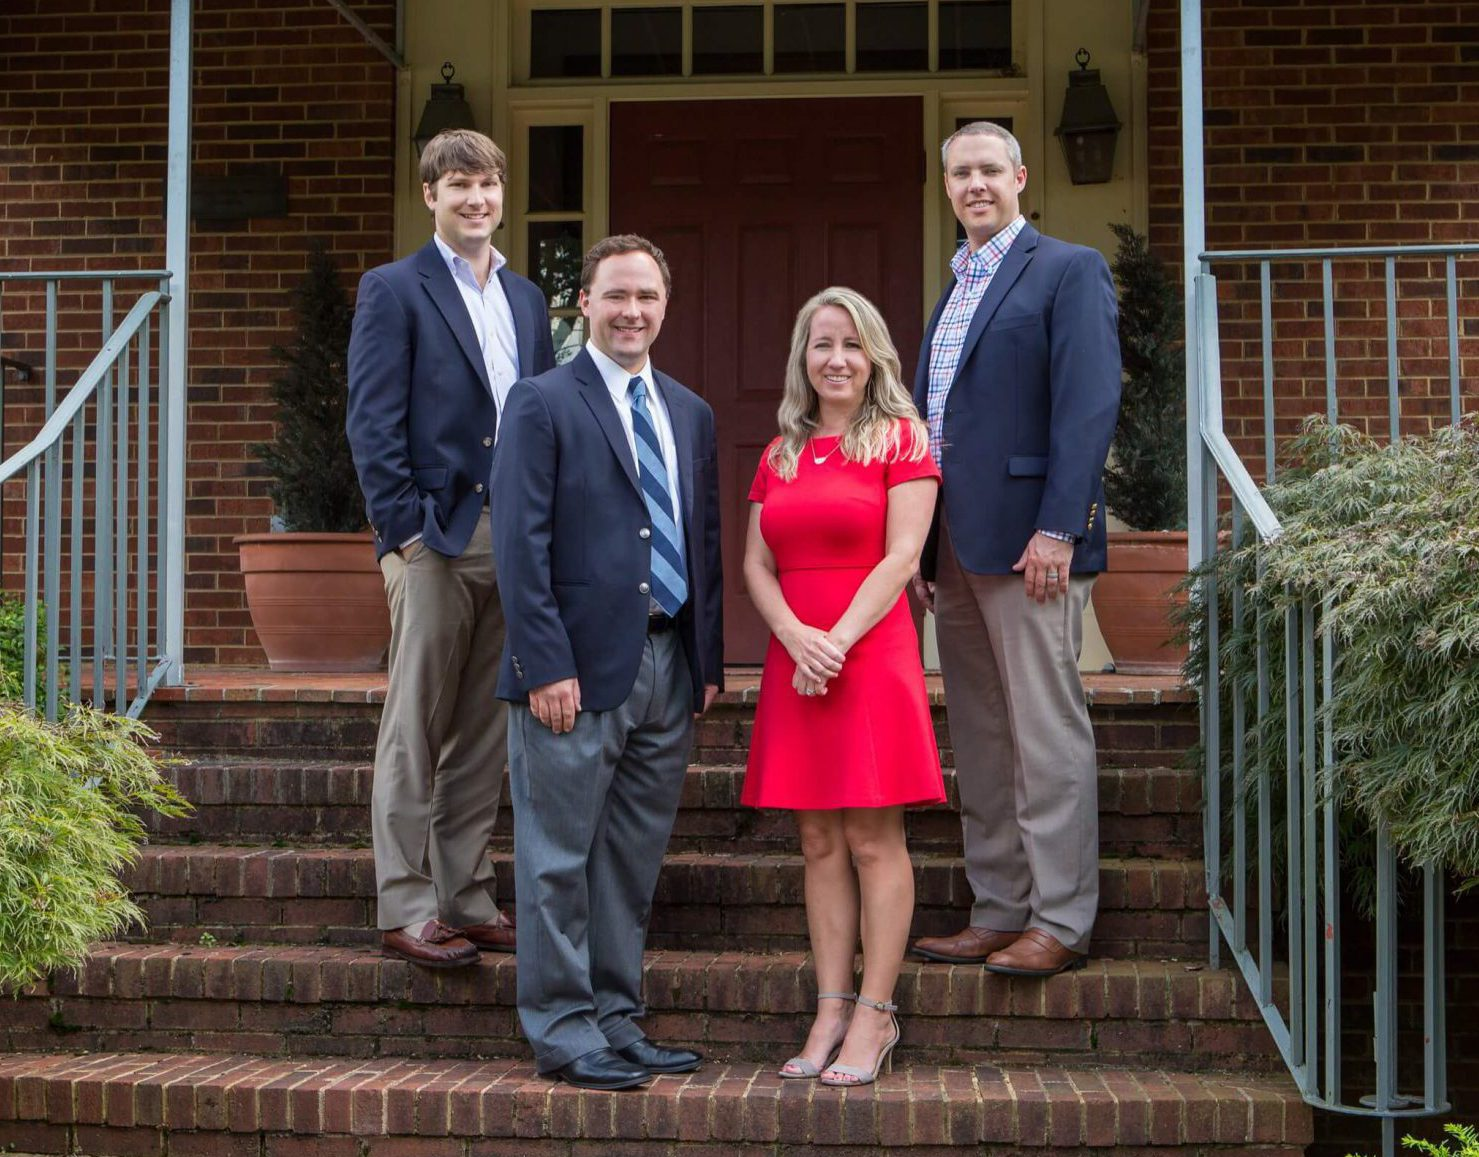 Bacon, Jessee, Perkins, Carroll, Anderson & Foust, LLP | Experienced attorneys in Knoxville and Morristown